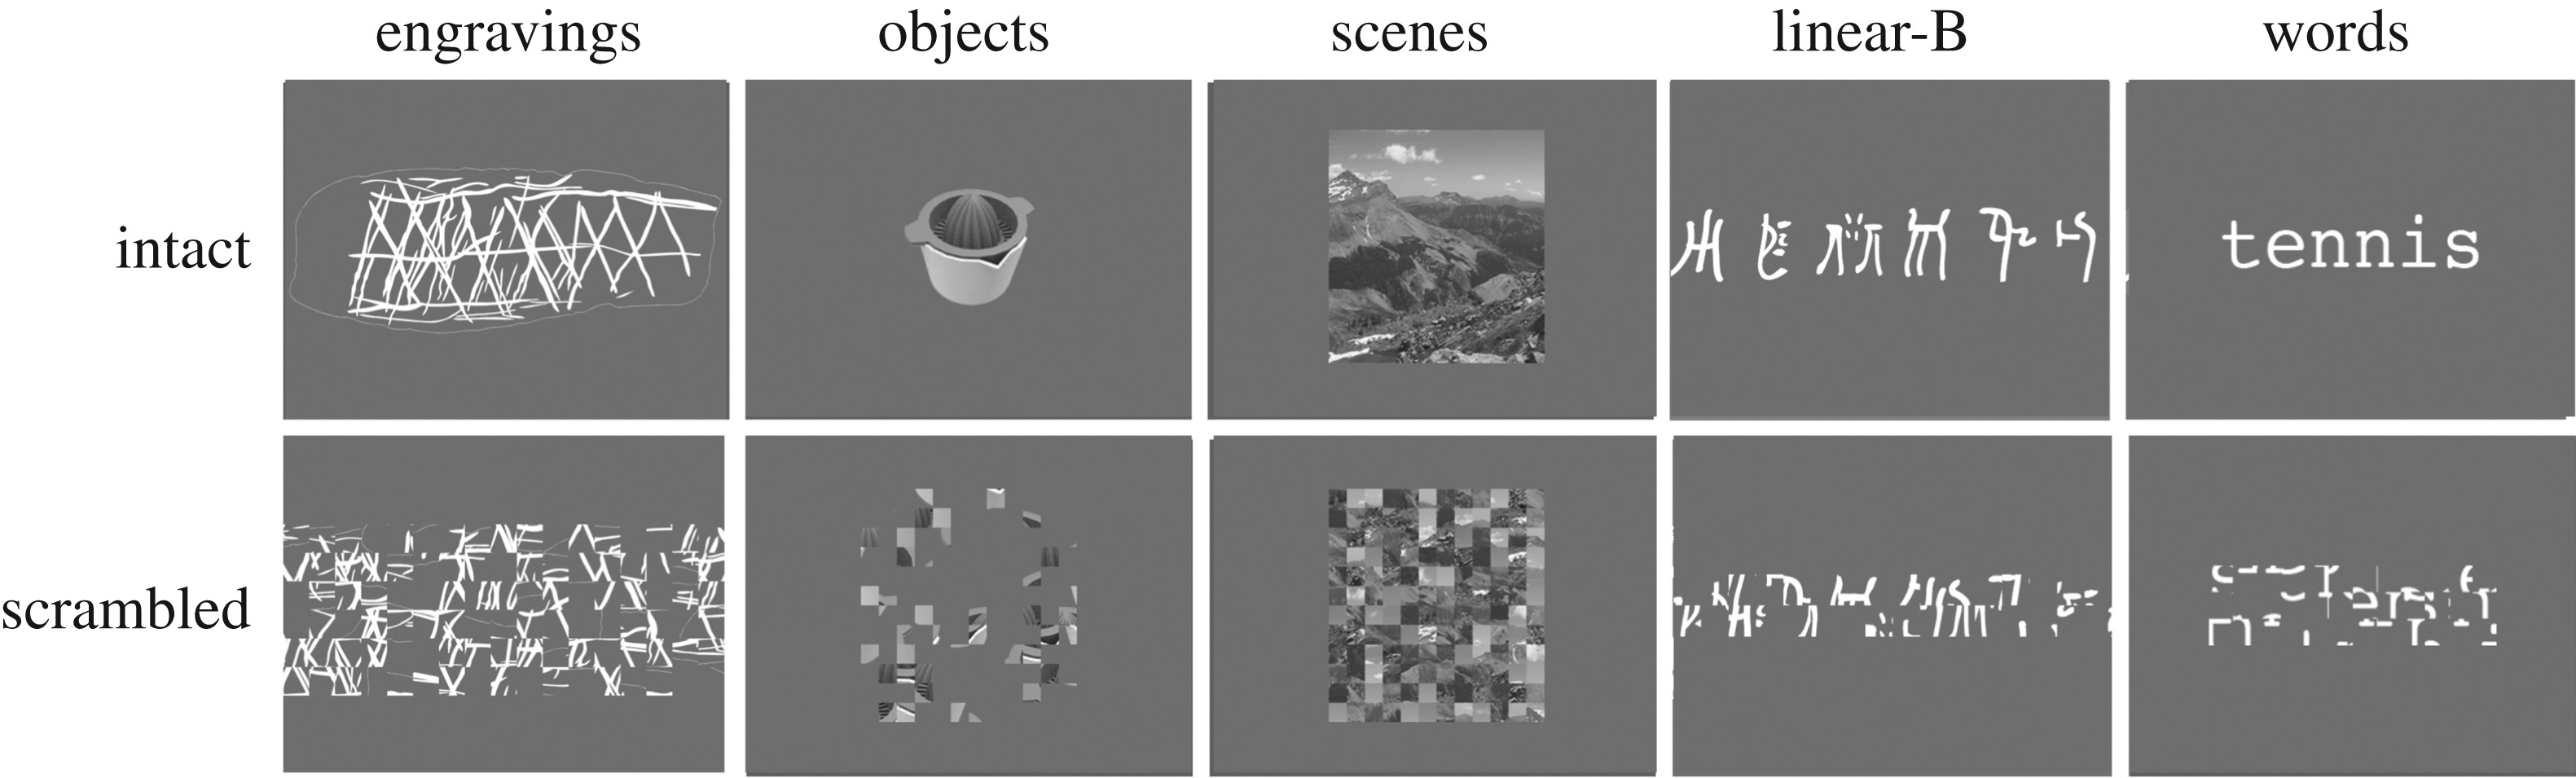 Neuroimaging supports the representational nature of the earliest